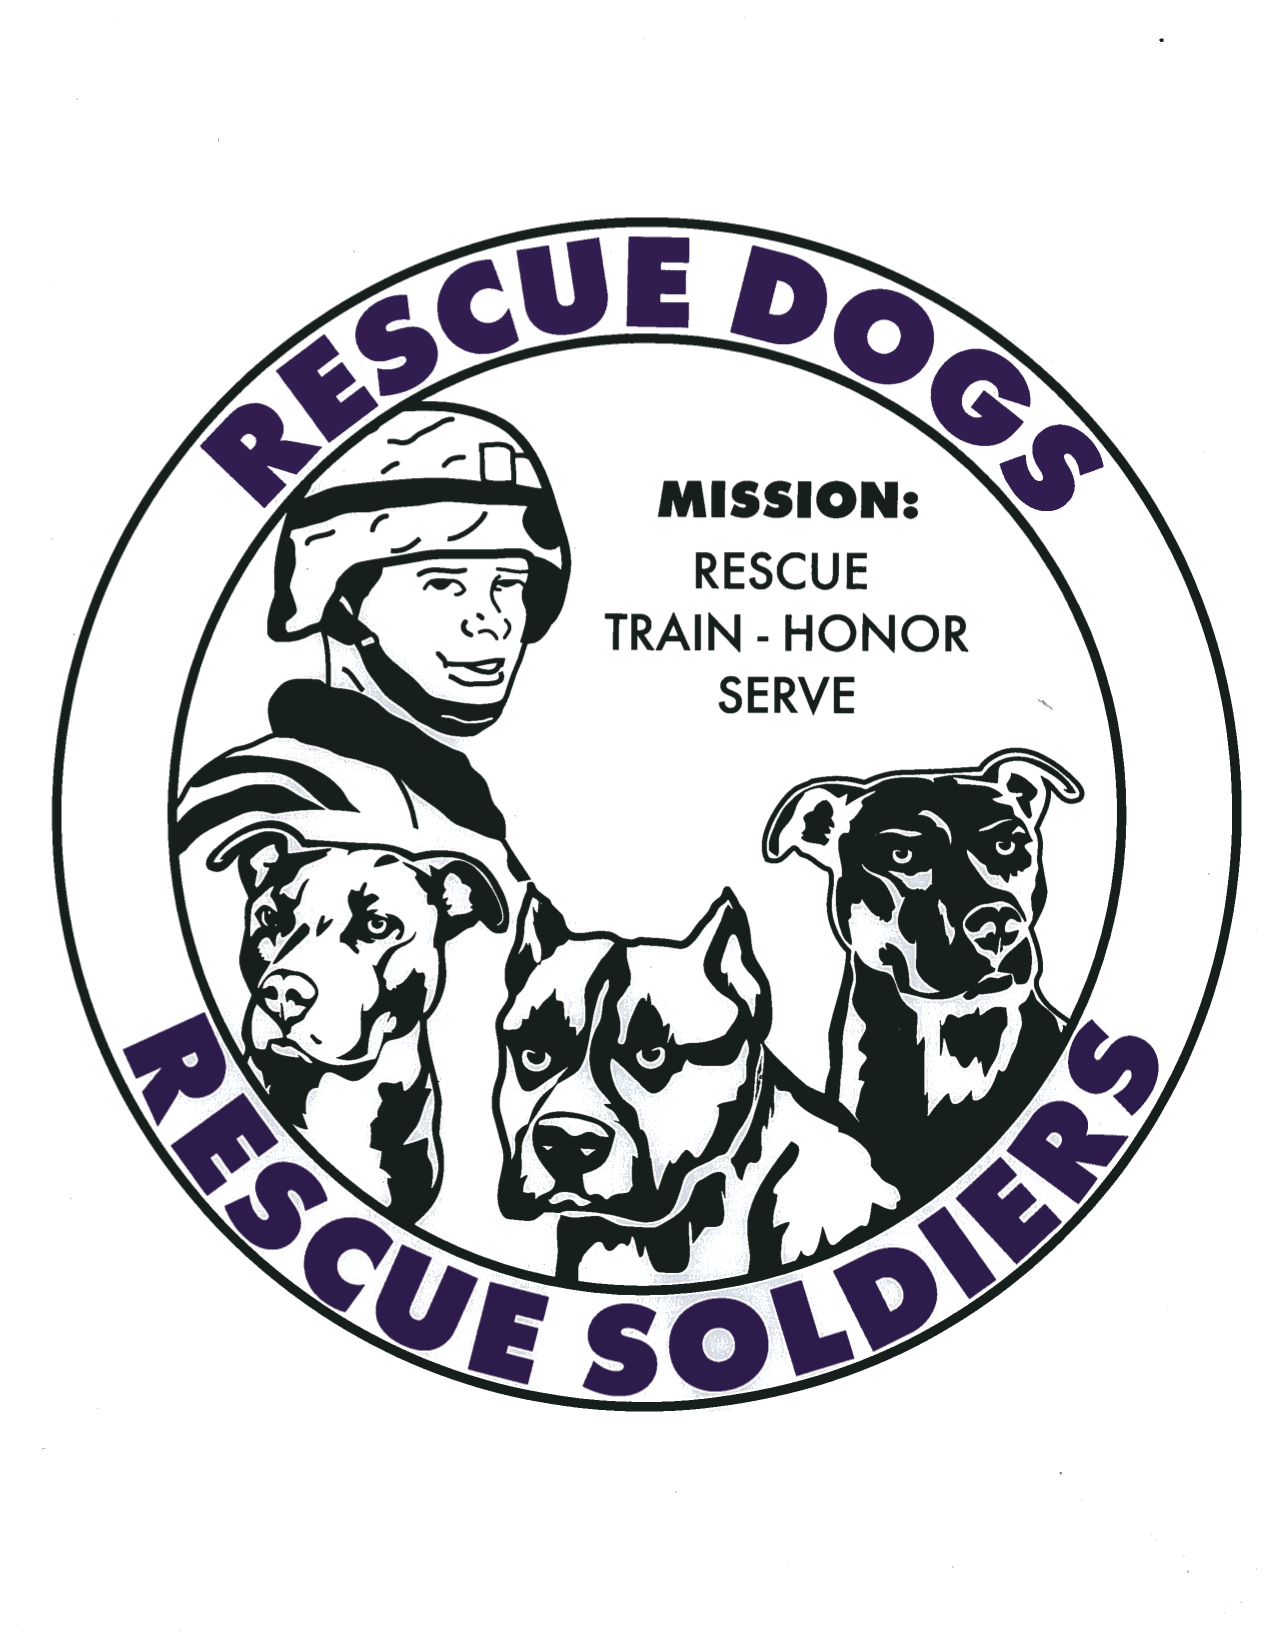 Rescue Dogs Rescue Soldiers - Partner Dates: October 8Rescue Dogs Rescue Soldiers provides long term and short term care for homeless animals. We also provide pet therapy services and train dogs for Veterans in need of service dogs.Train rescue dogs as service dogs for soldiers injured in Iraq and Afghanistan.• Name the dogs in honor of fallen soldiers and carefully pair the dogs with veterans to allow a better life for both soldier and dog.• Work with teens in a juvenile detention facility to train the dogs.http://rescuedogsrescuesoldiers.org